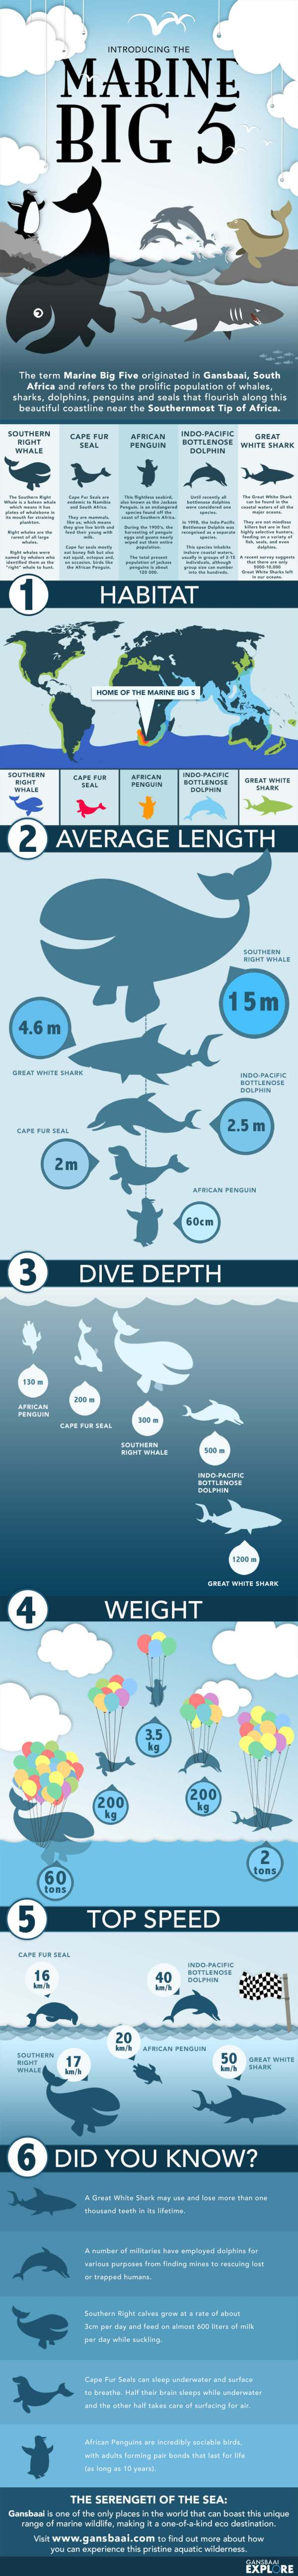 marine-big-5-infographic-galleryr